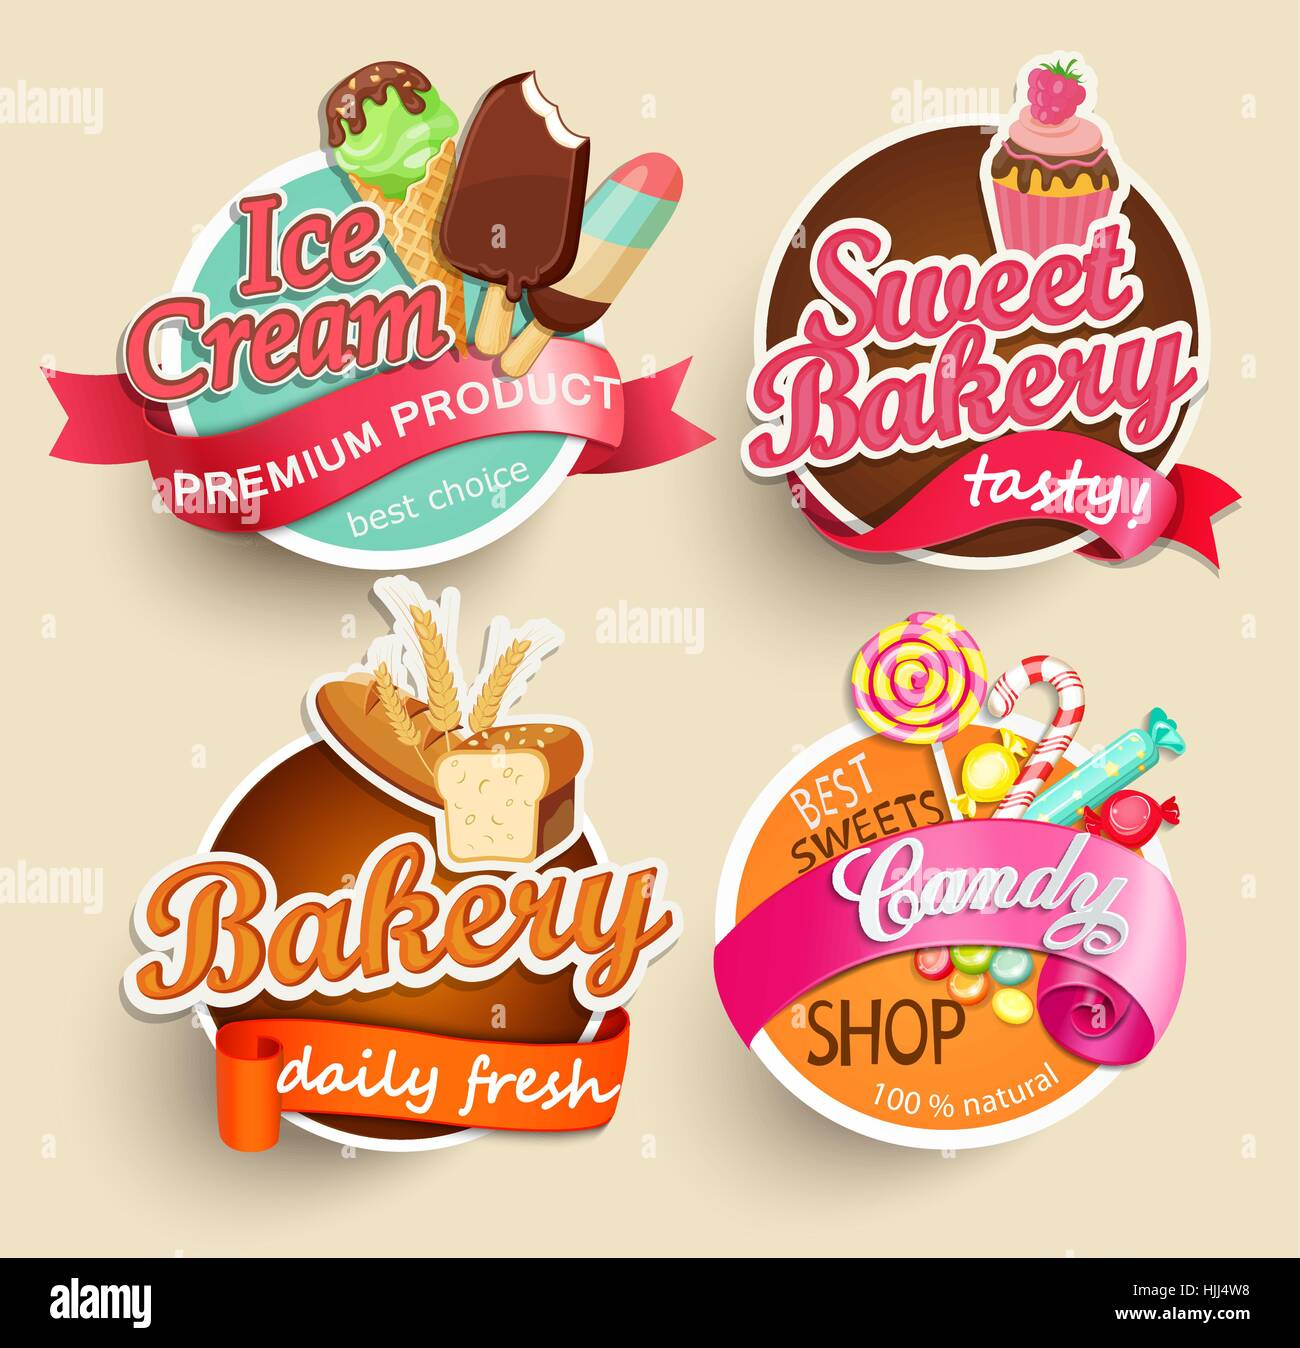 food label or sticker - bakery, ice cream, candy, sweet bakery stock